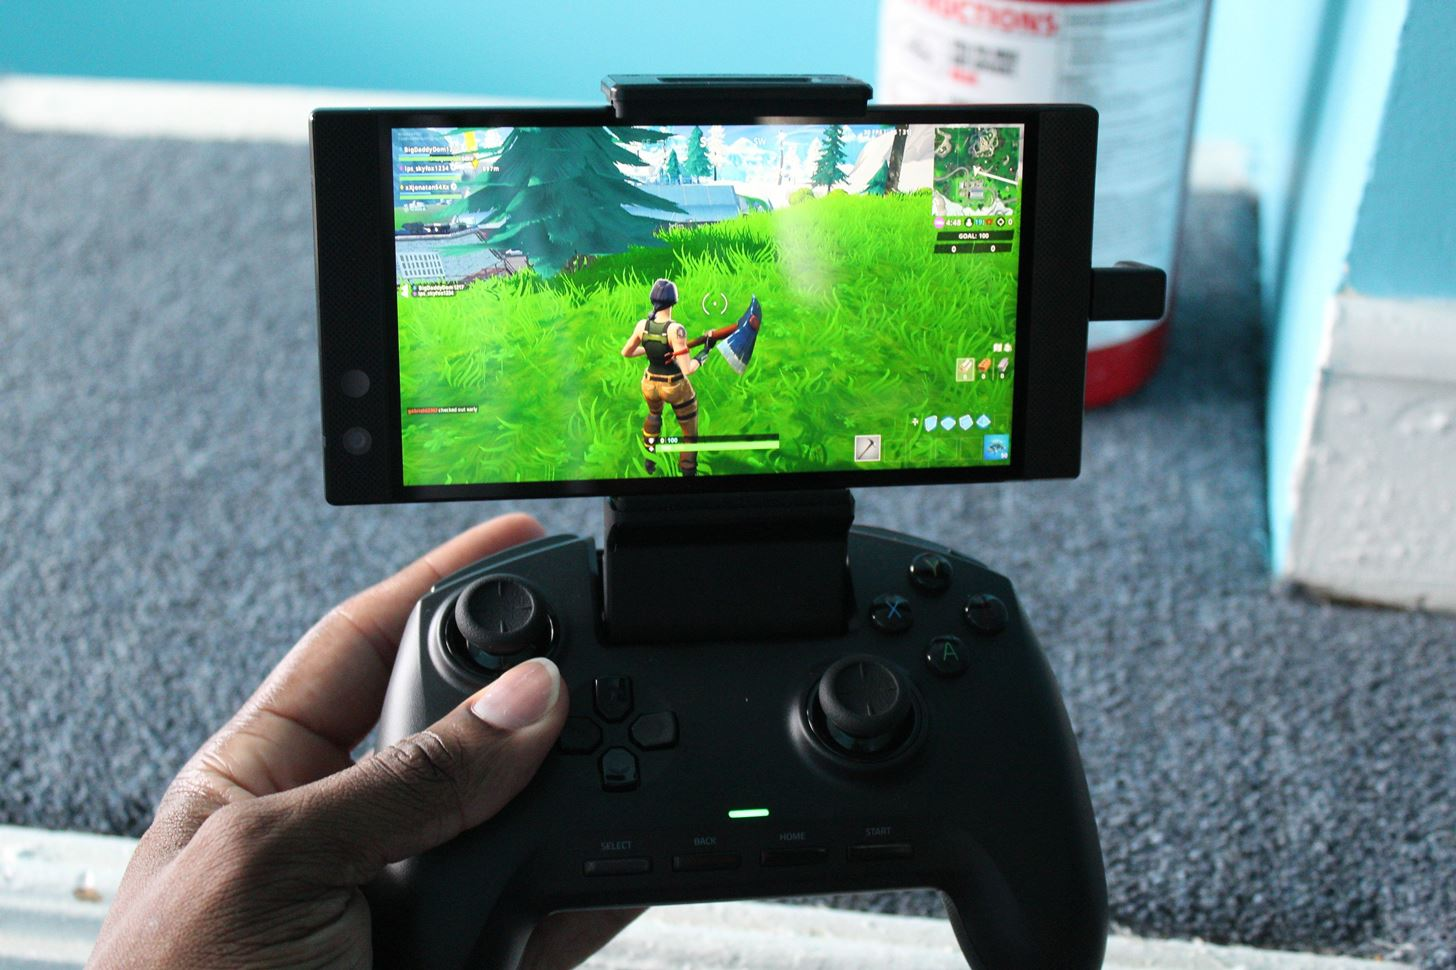 Ranked: The 5 Best Gaming Phones in 2019